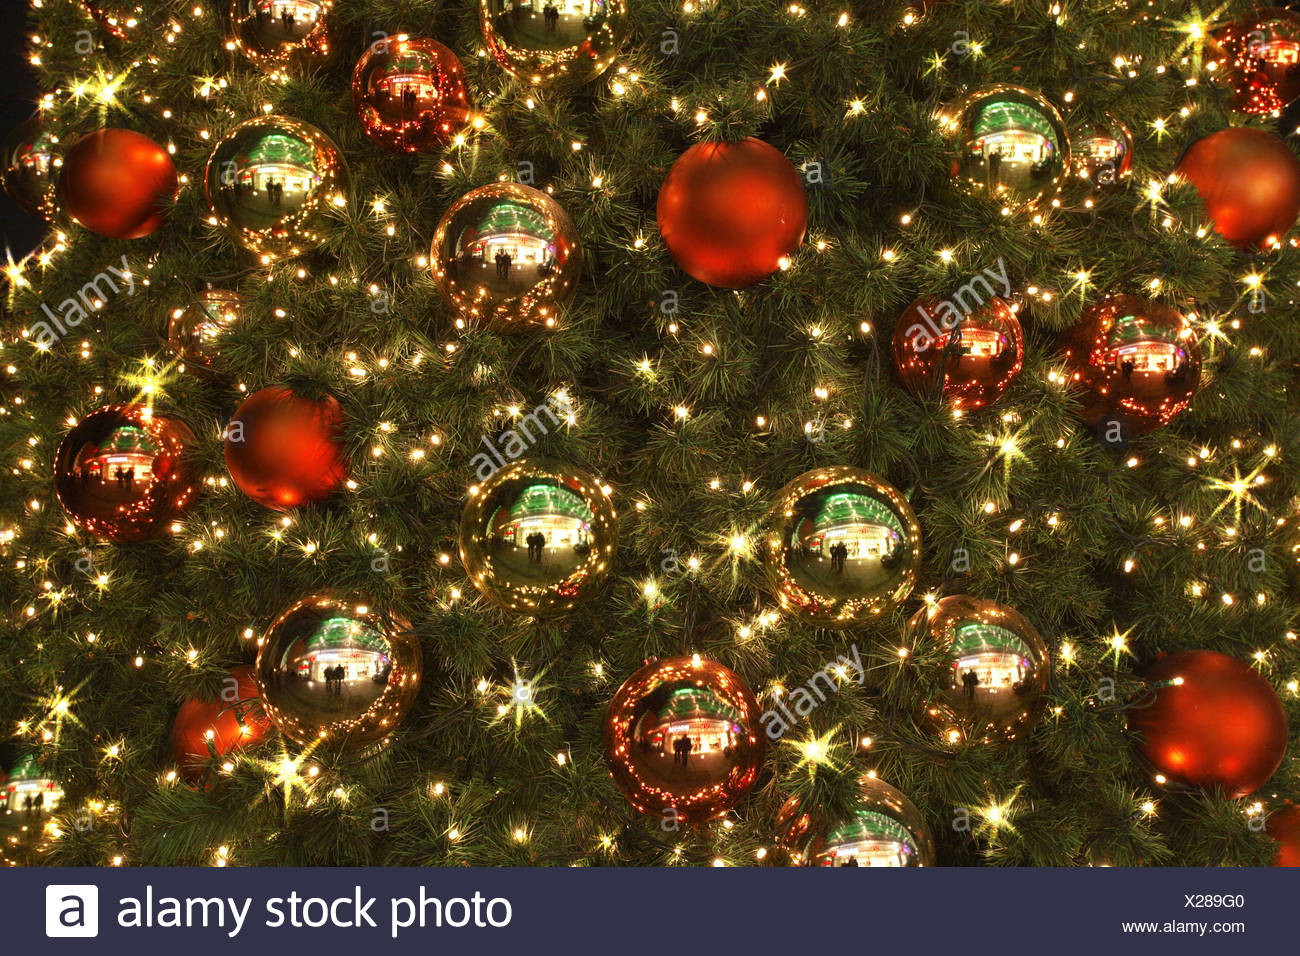 Christmas-tree illumination close-up tree fir-tree Christmas-jewelry ...